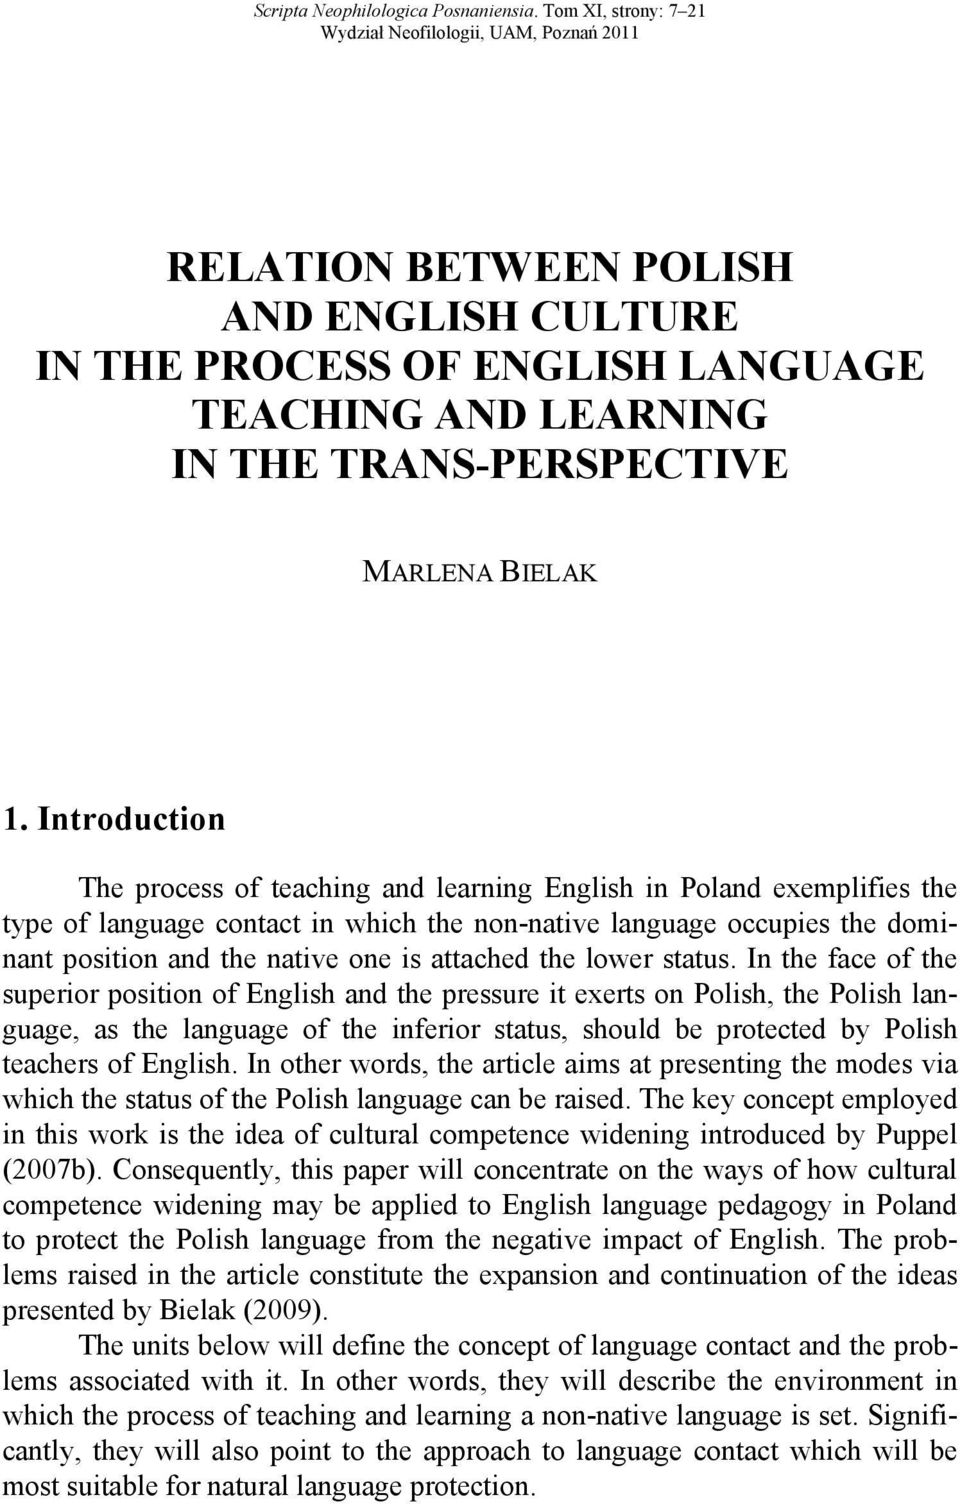 Introduction The process of teaching and learning English in Poland exemplifies the type of language contact in which the non-native language occupies the dominant position and the native one is